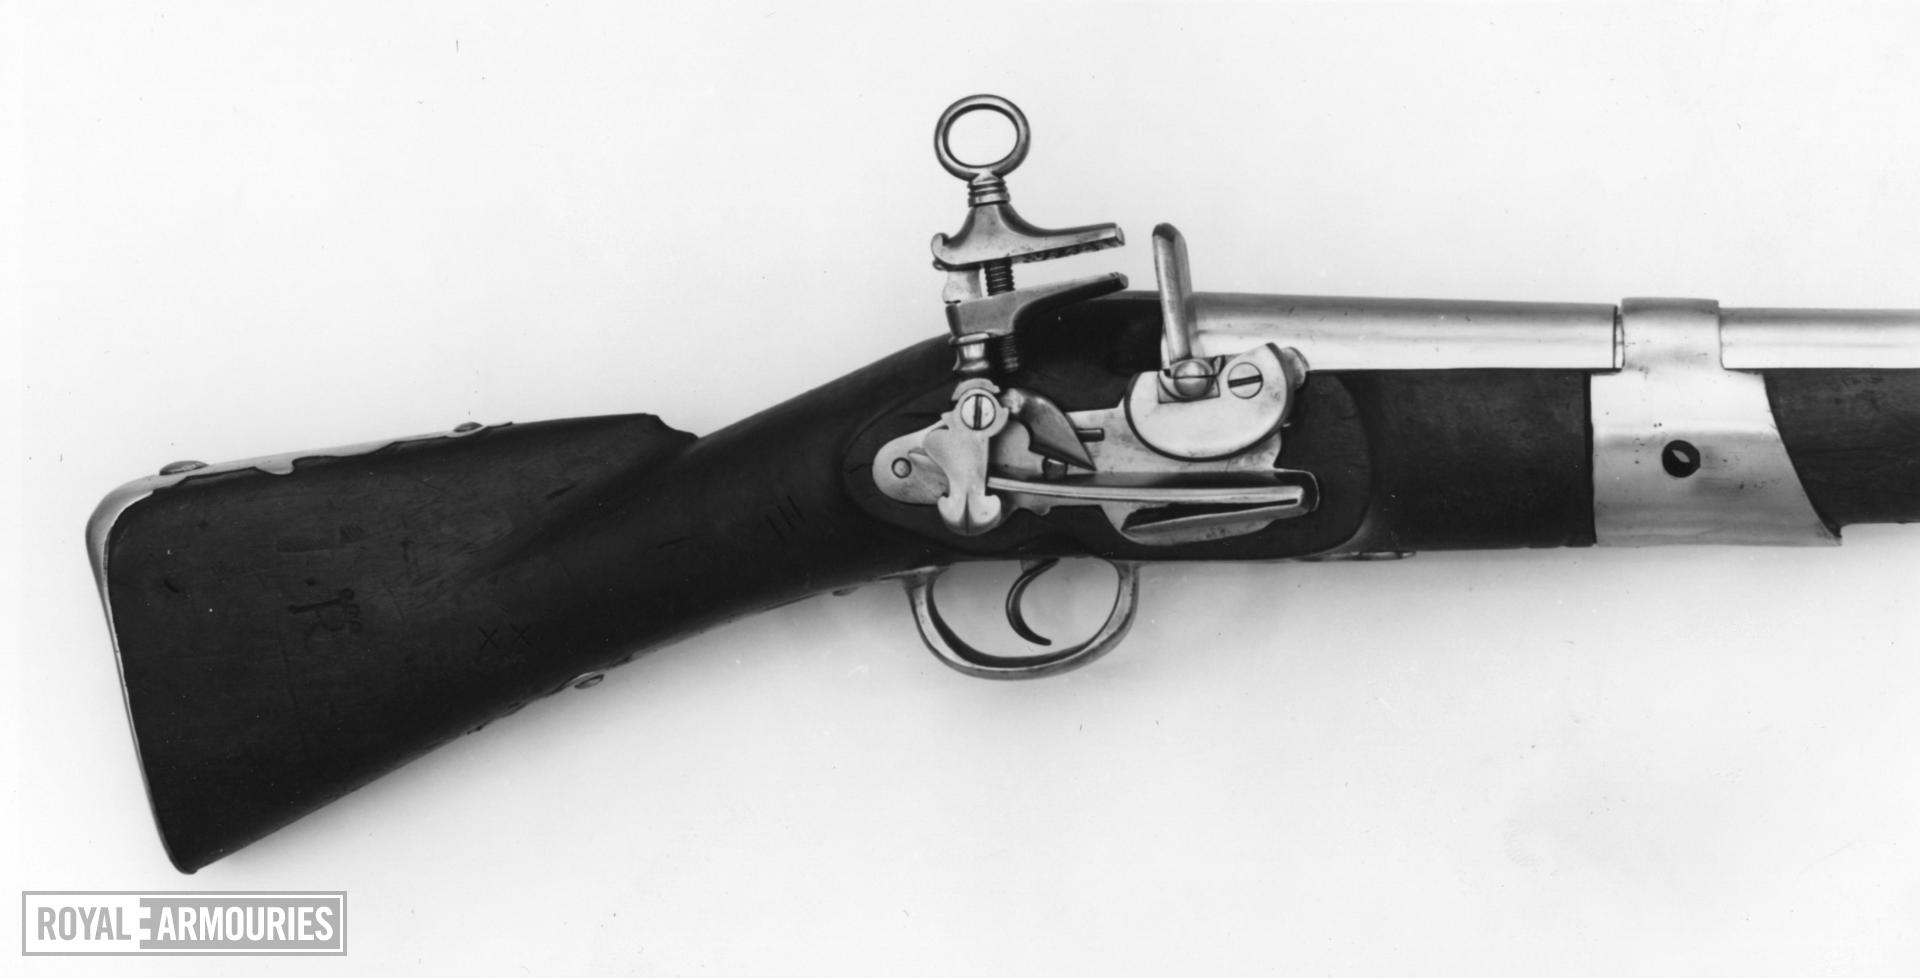 Flintlock muzzle-loading musketoon